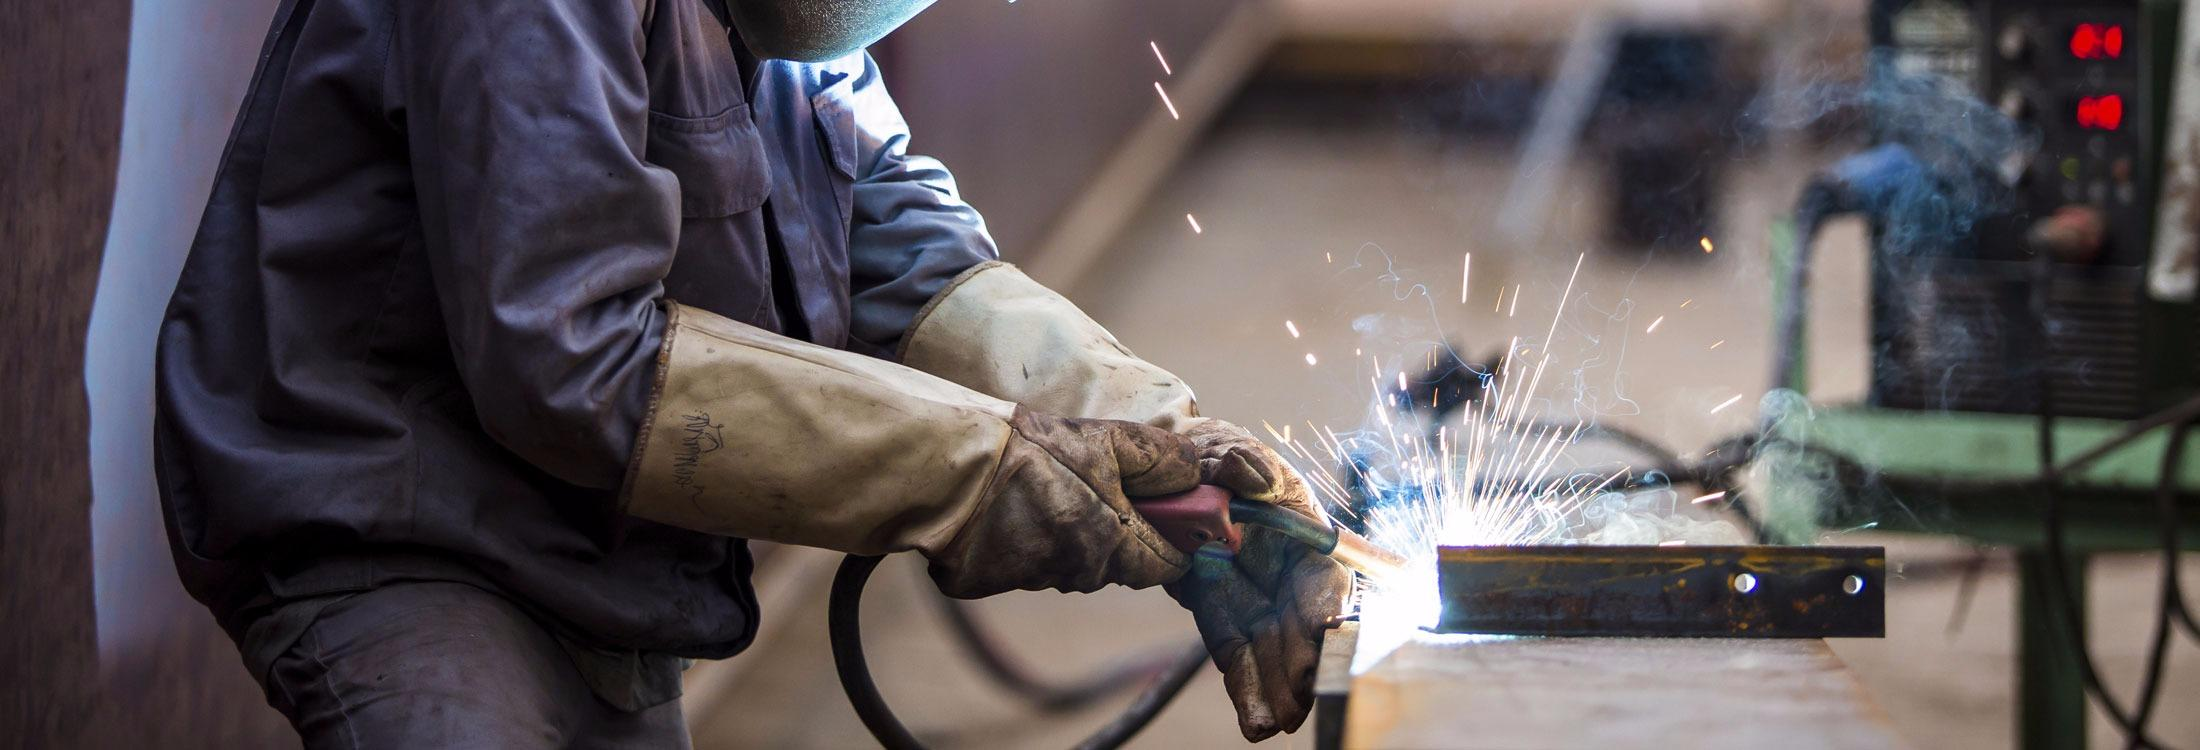 R&T Welding and Fabrication image 0